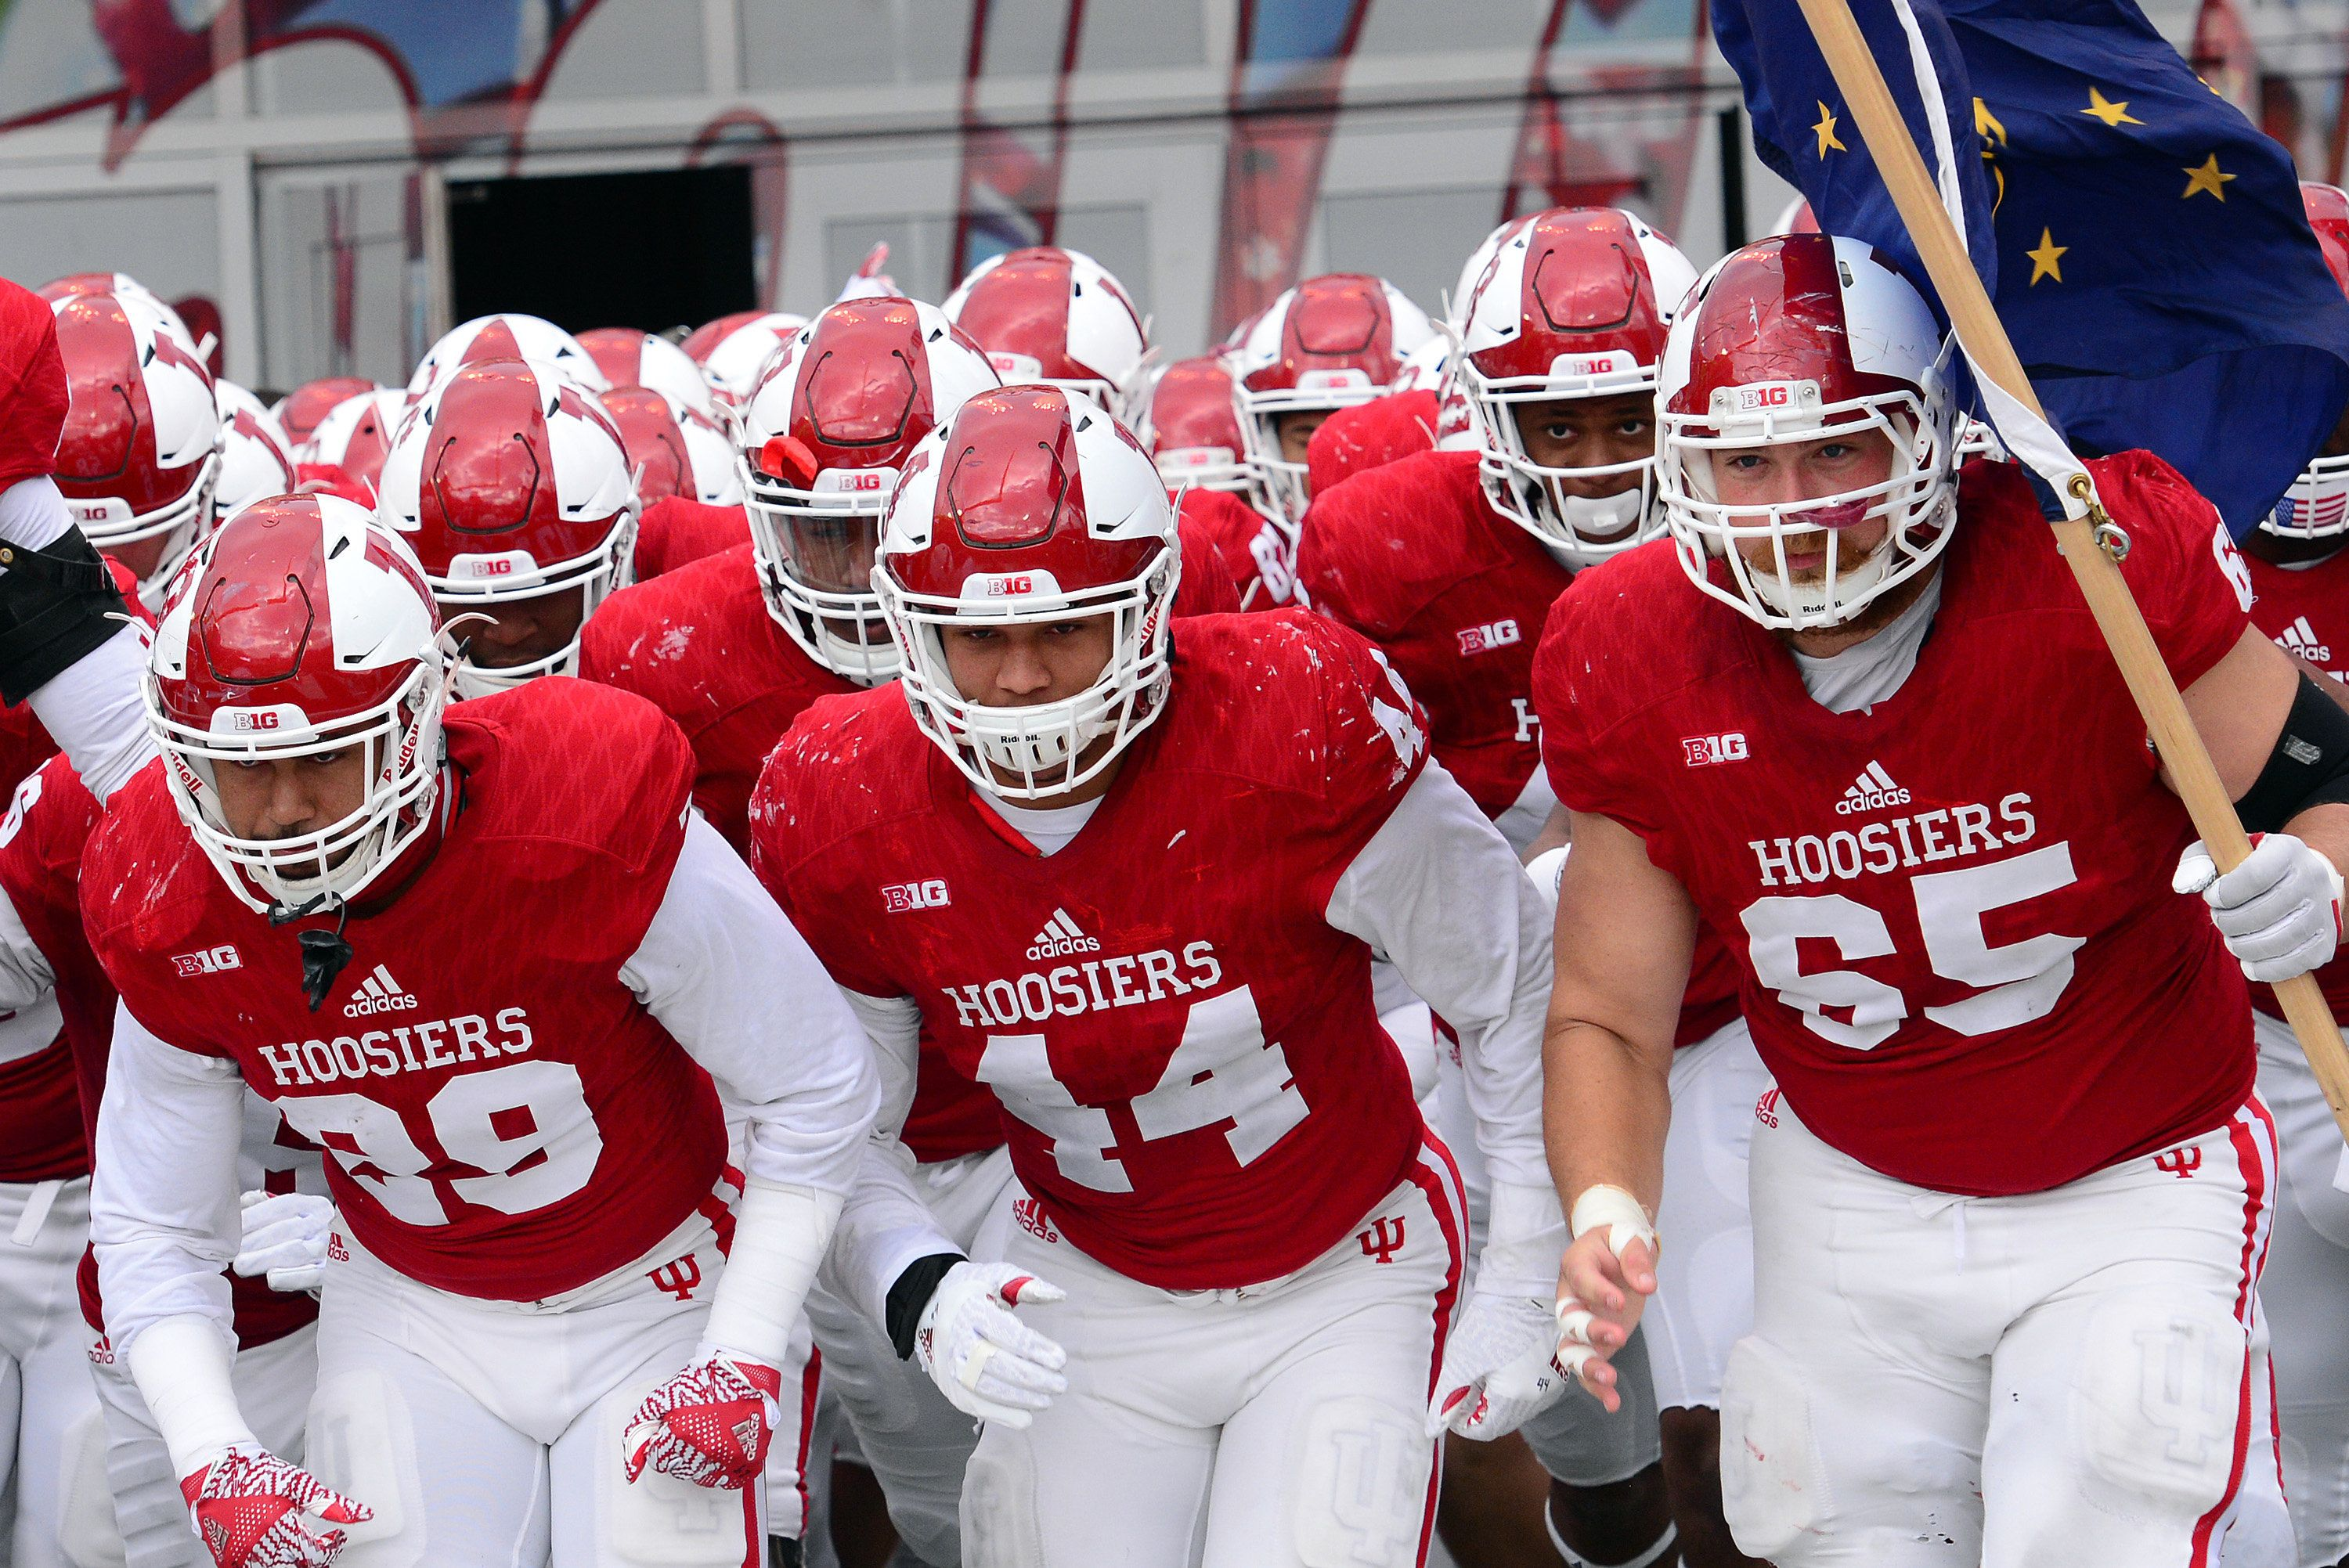 BLOOMINGTON, IN - NOVEMBER 26: Indiana University Hoosiers Offensive Lineman Wes Rogers (65) carries an Indiana State flag as the team runs onto the field for the Big Ten Conference game between the Purdue Boilermakers and the Indiana Hoosiers on November 26, 2016, at Memorial Stadium in Bloomington, Indiana. (Photo by Michael Allio/Icon Sportswire via Getty Images)